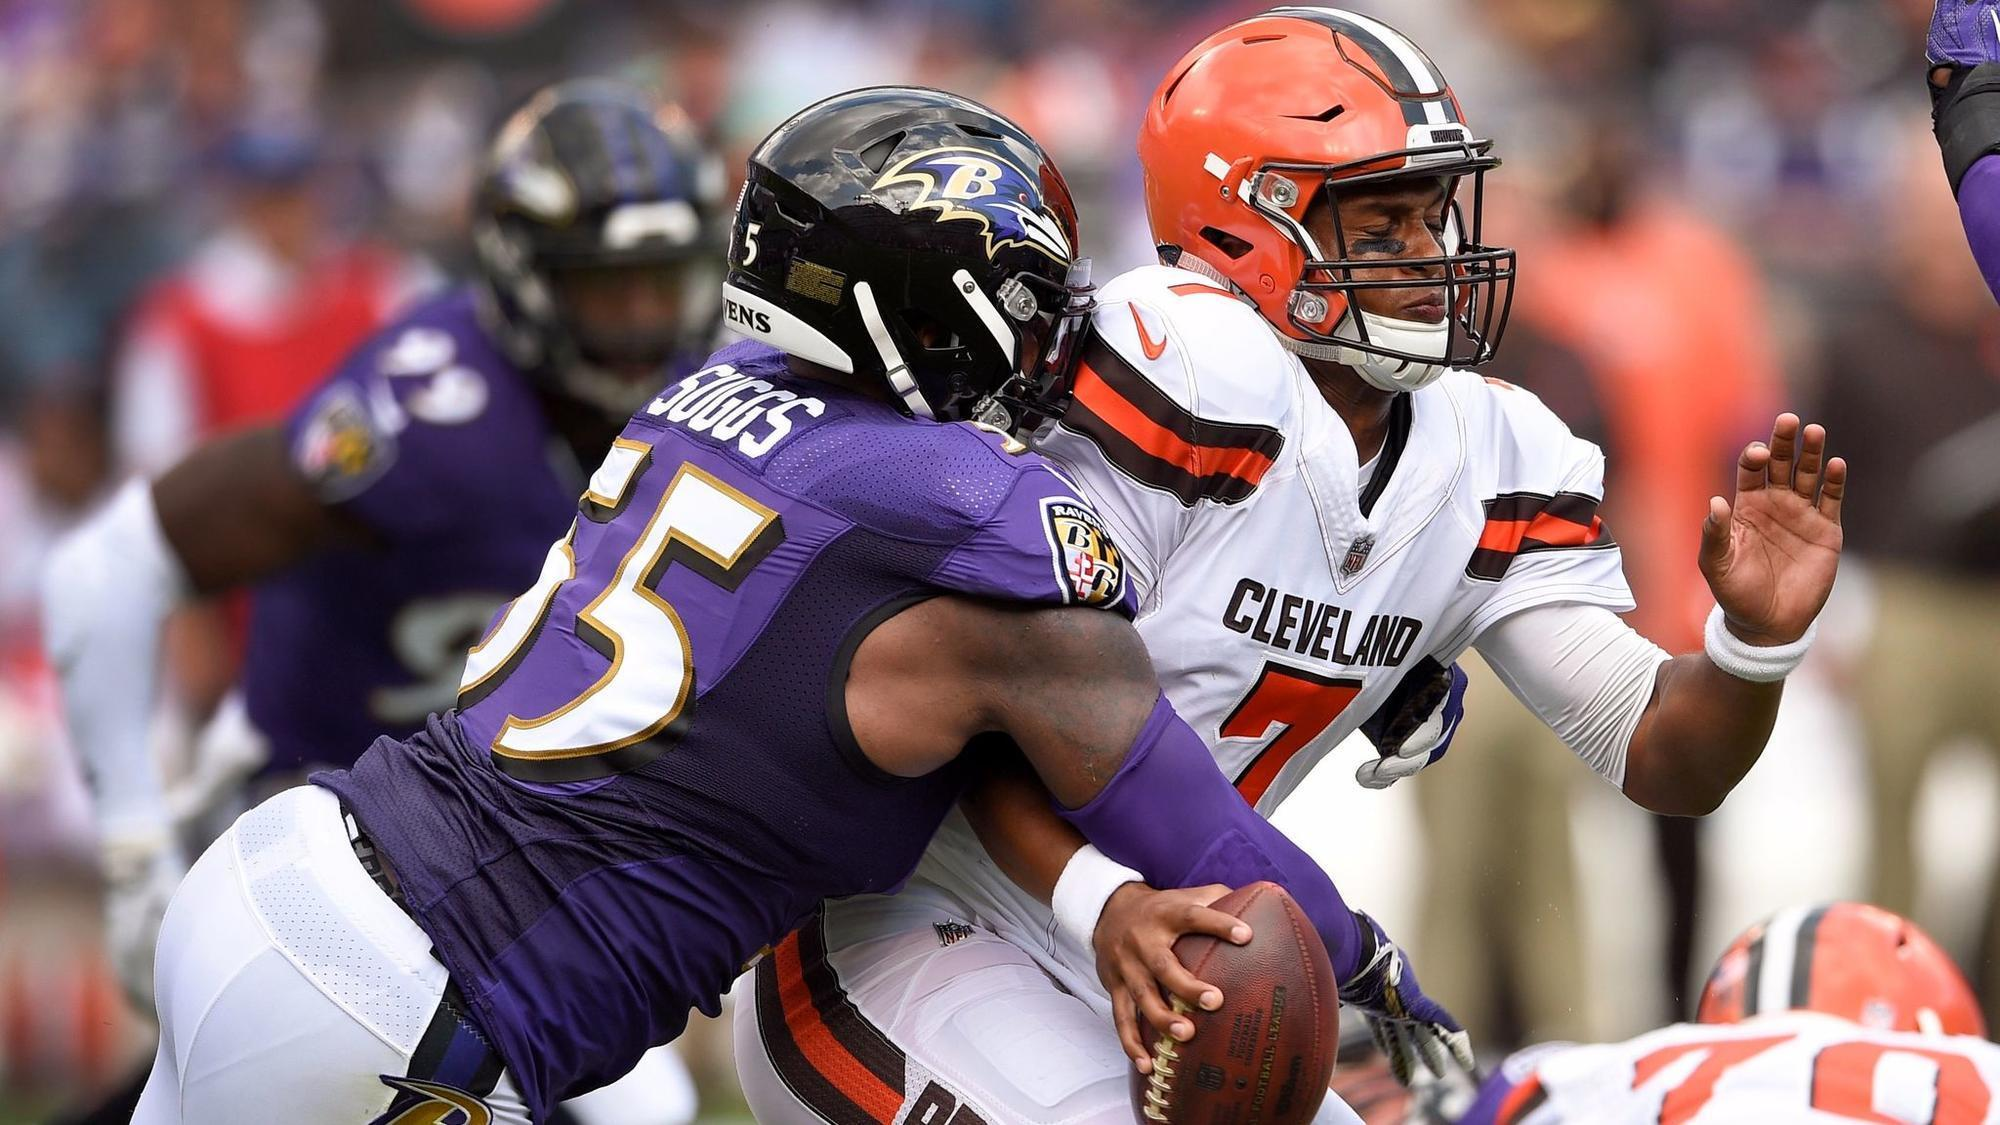 Bs-sp-ravens-browns-rematch-scouting-report-20171213